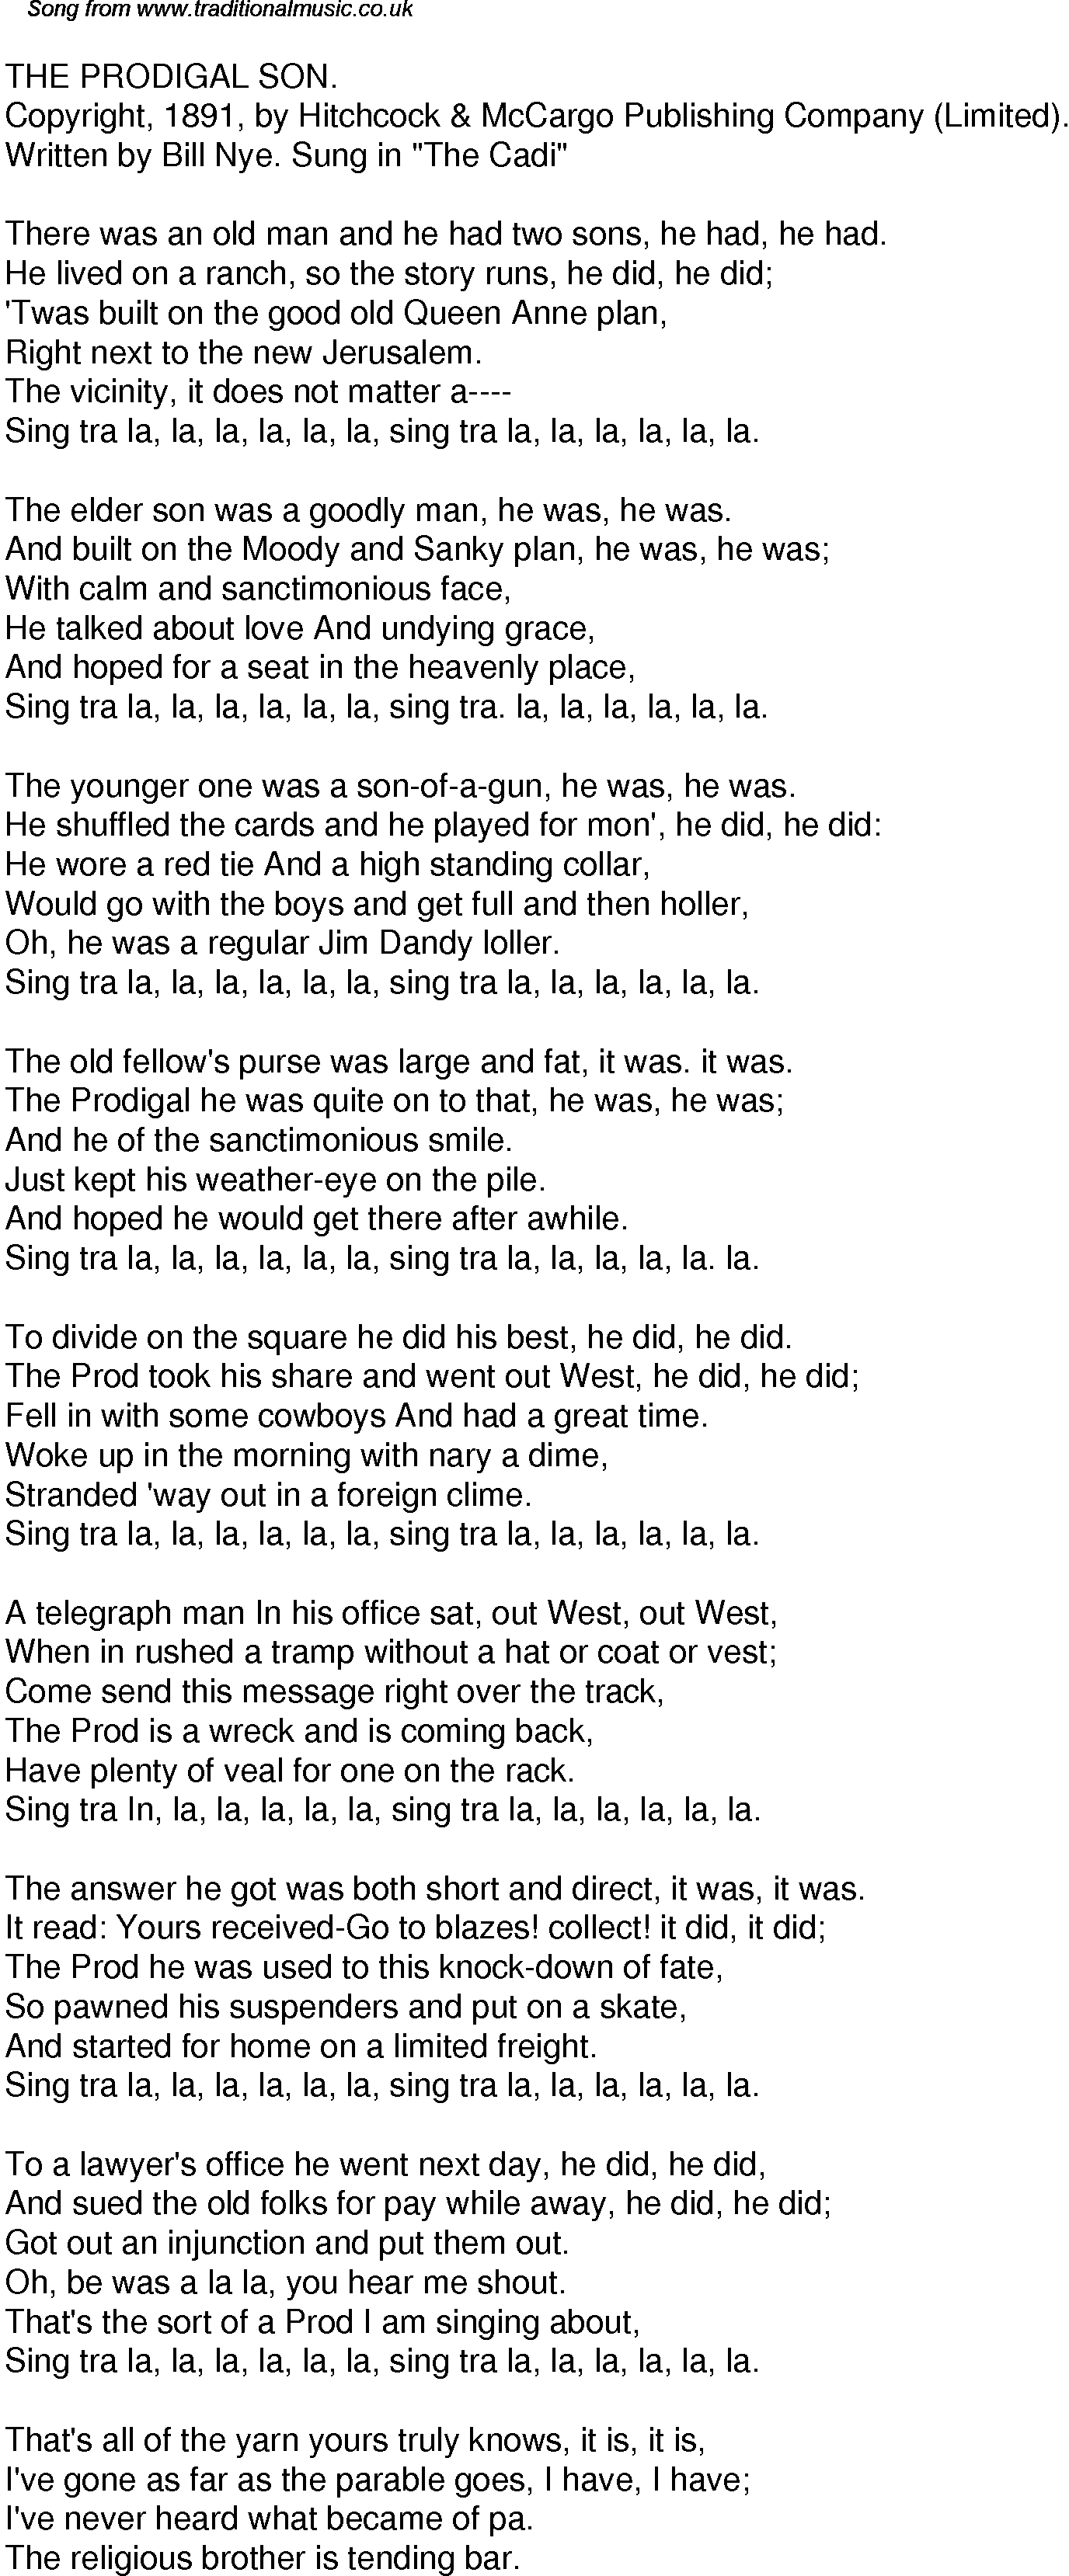 Old Time Song Lyrics for 34 The Prodigal Son